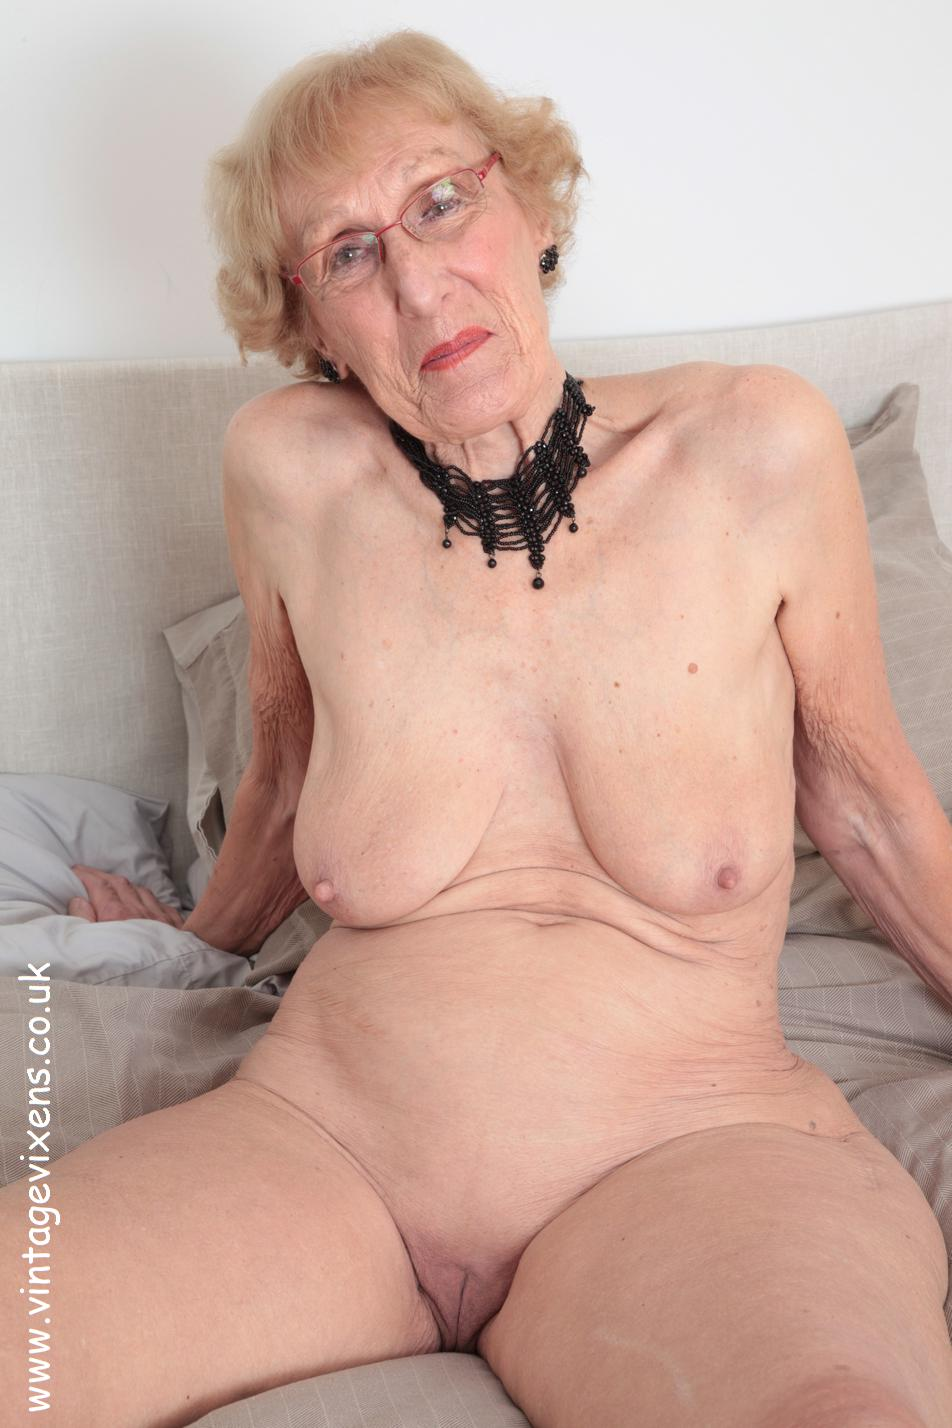 Archive Of Old Women Old Hot Grannies New Sets-7851